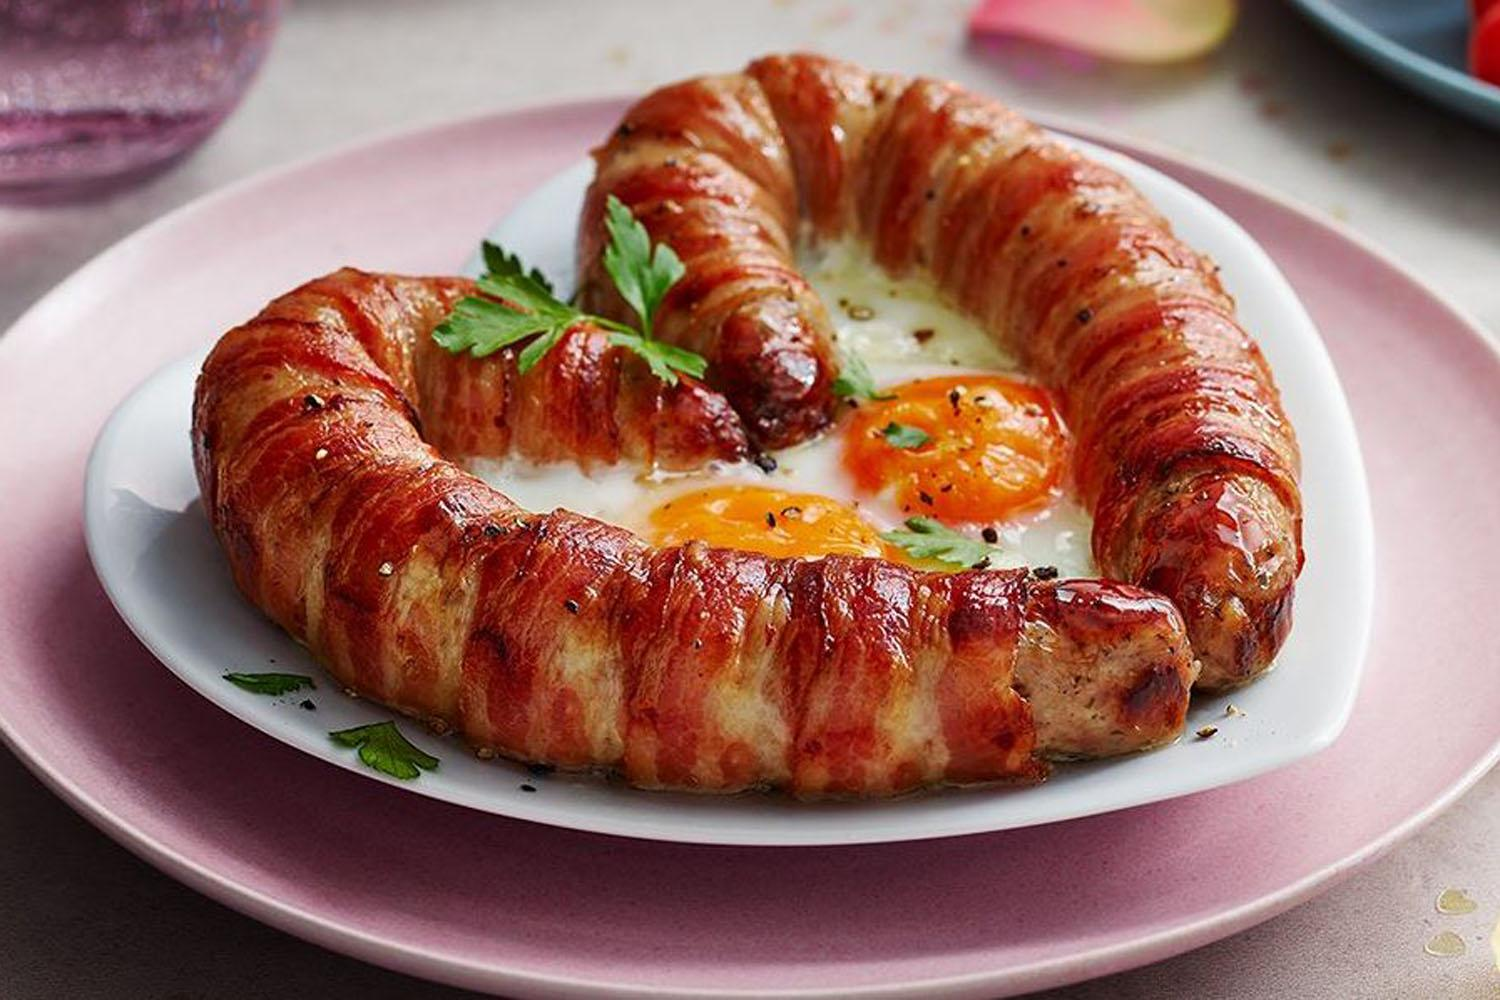 M&s Revives The Love Sausage And Its £20 Meal Deal photo